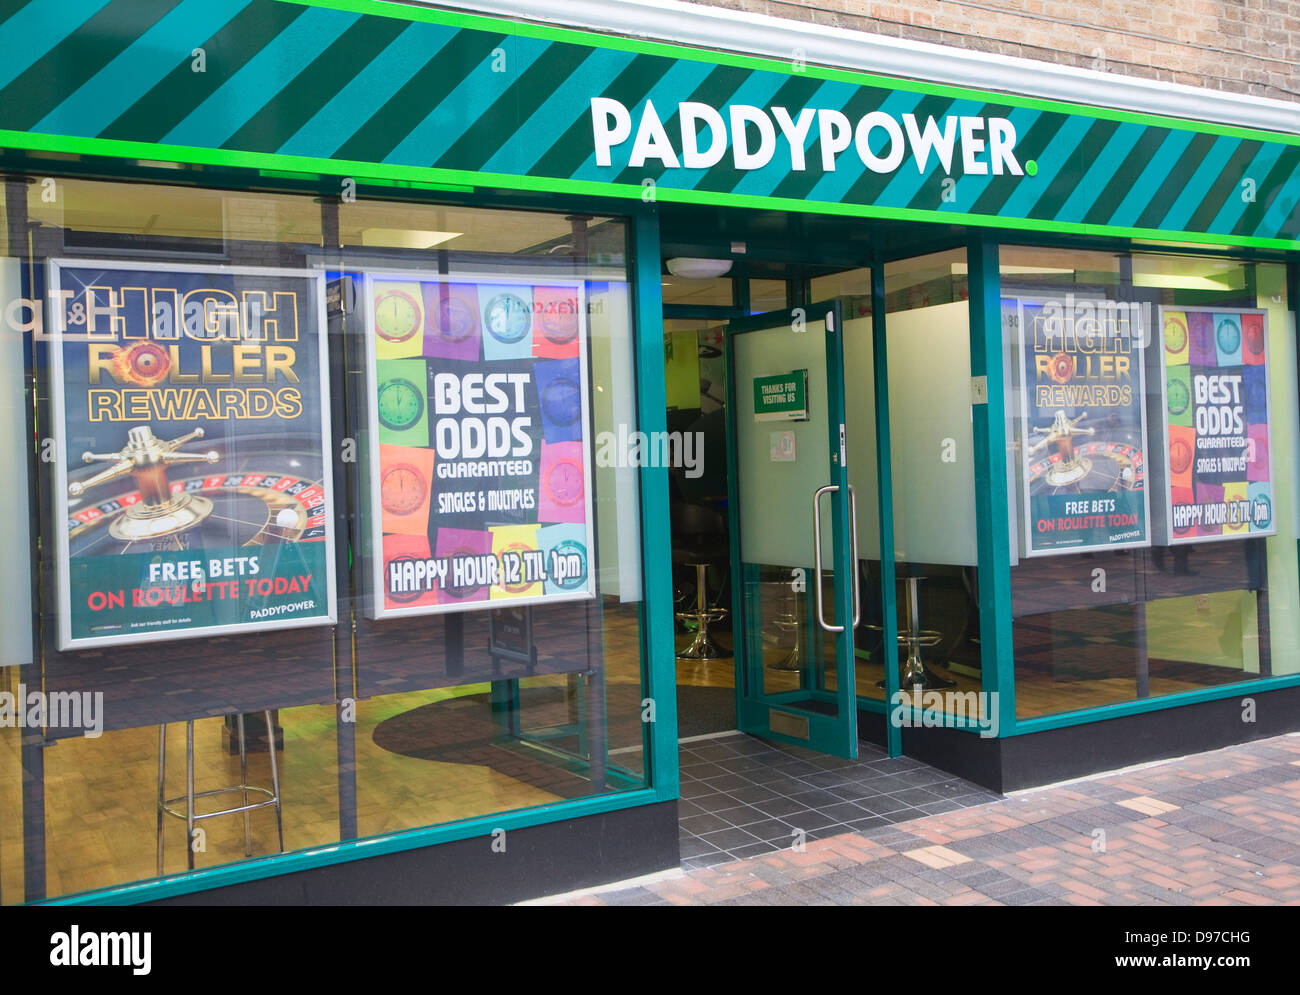 Paddypower bookies shop Swindon, Wiltshire, England, UK - Stock Image